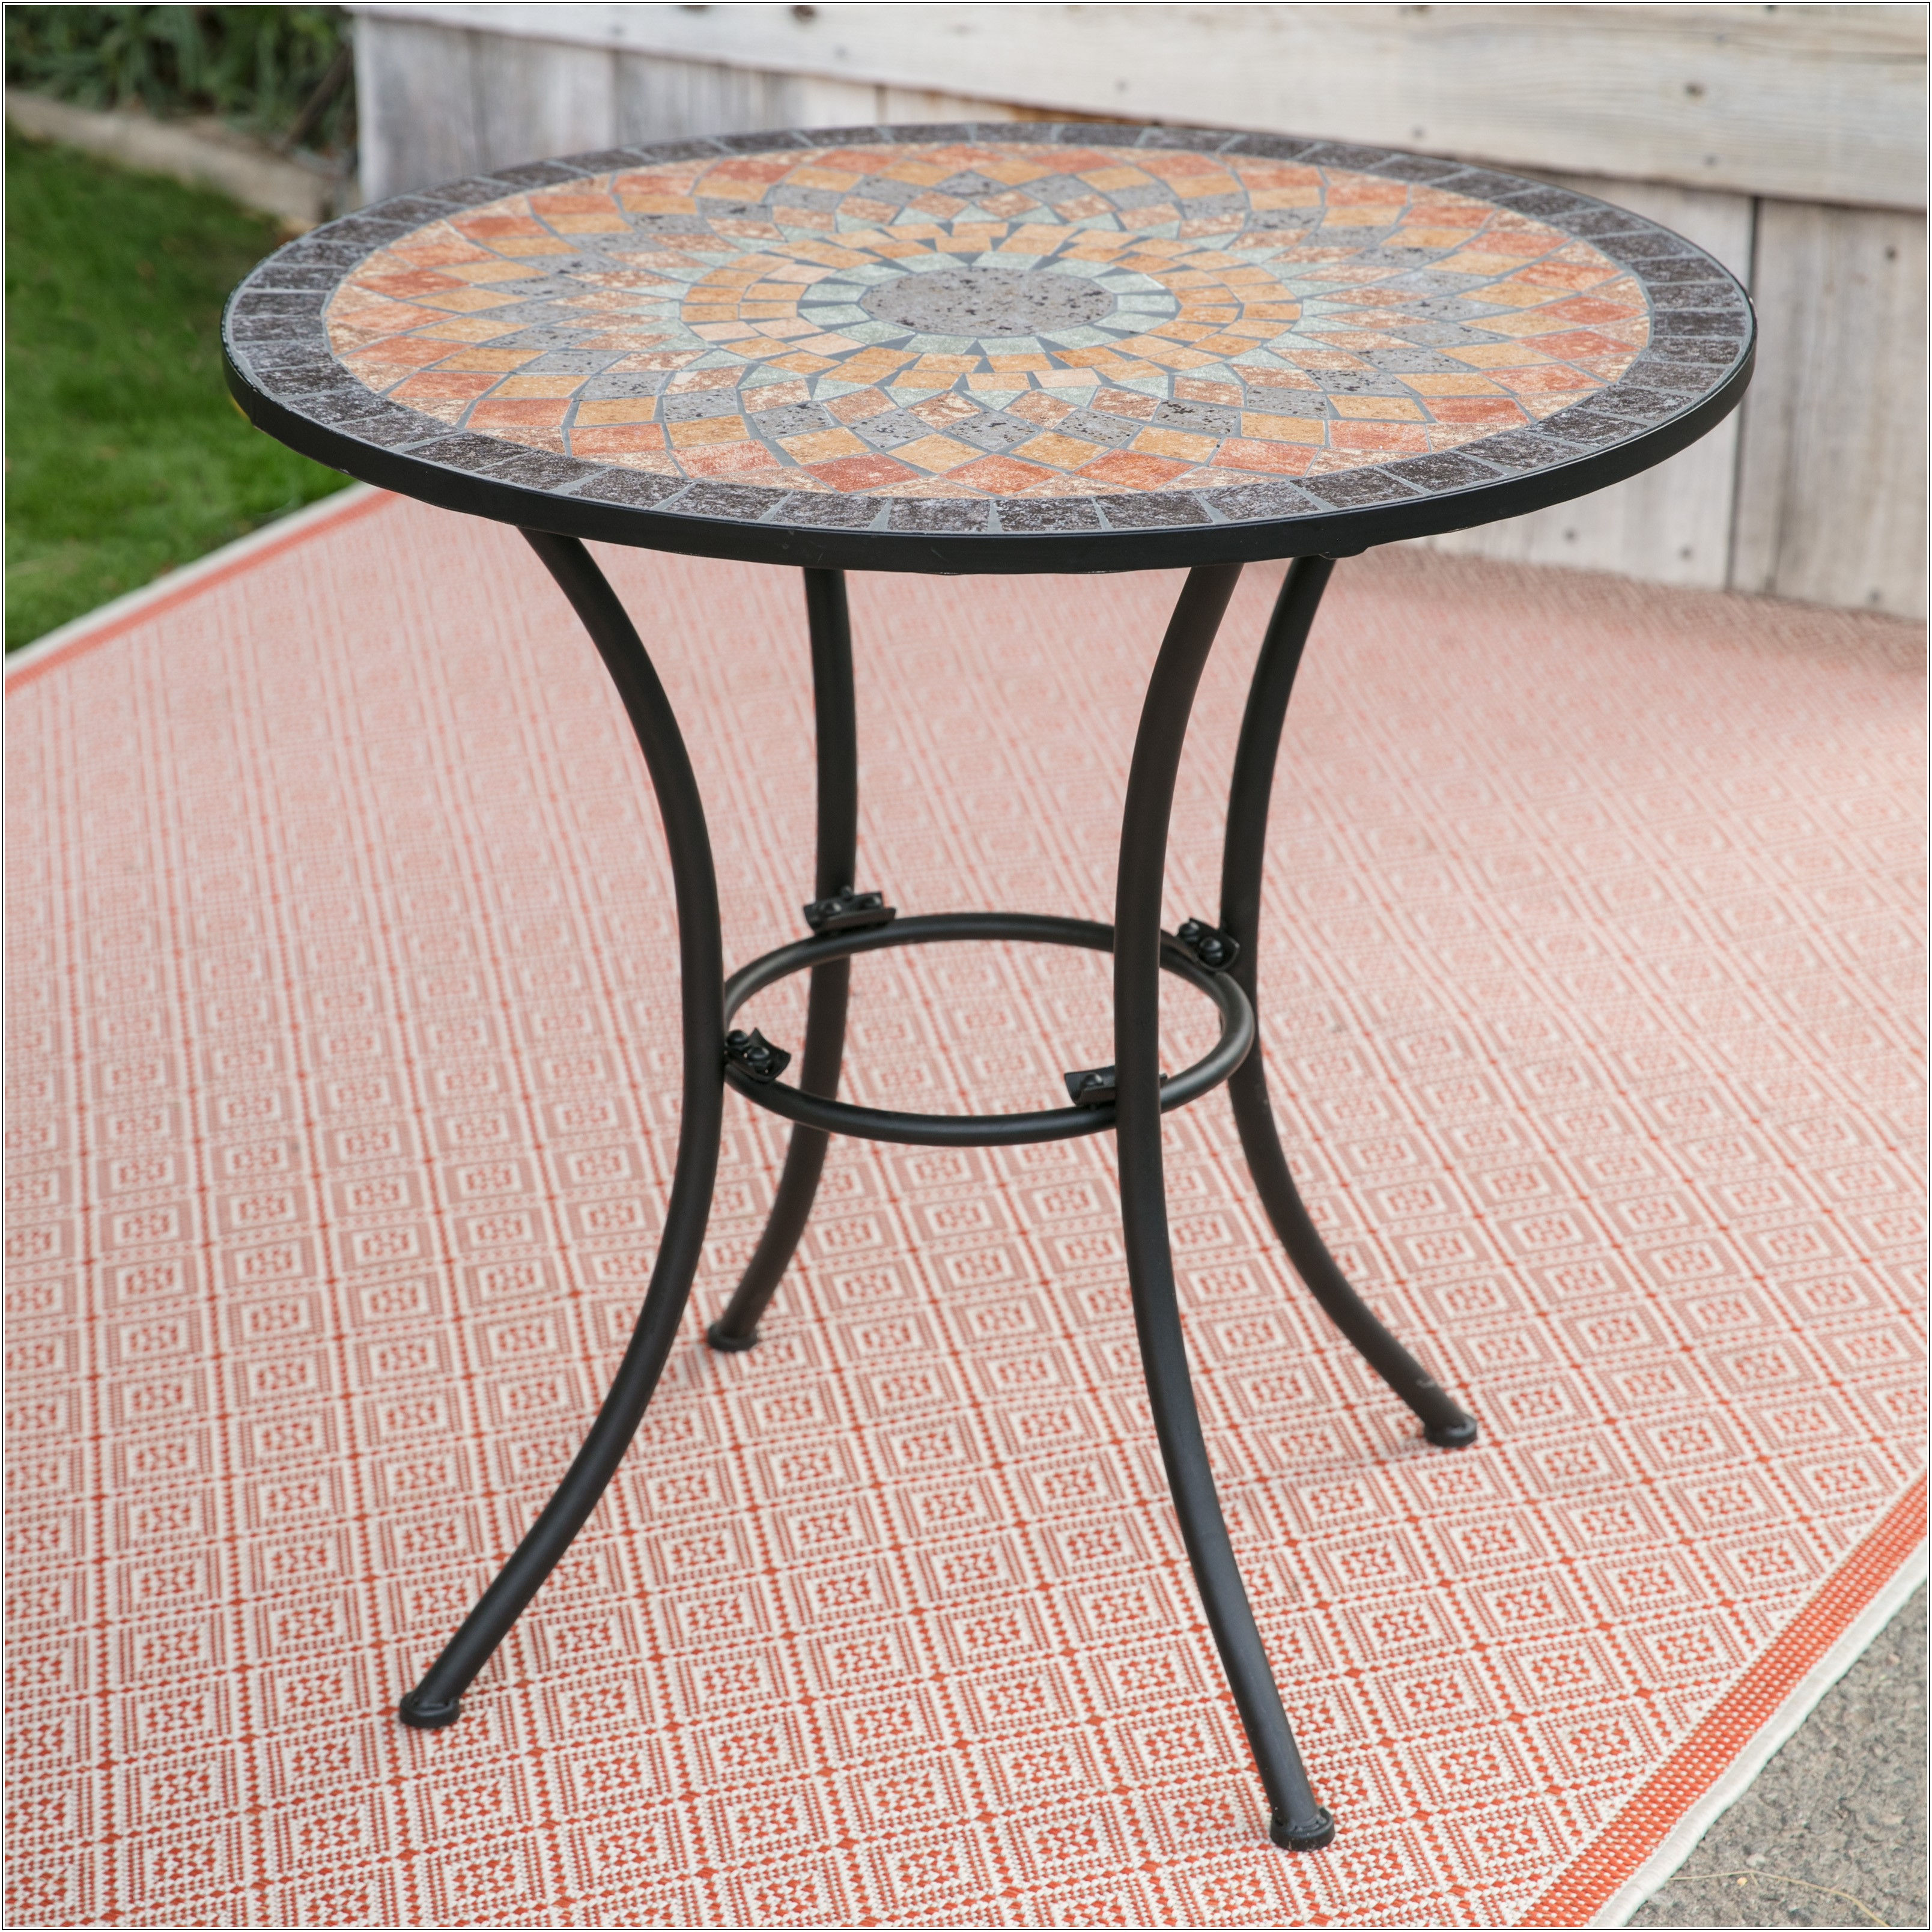 30 Inch Round Patio Table And Chairs